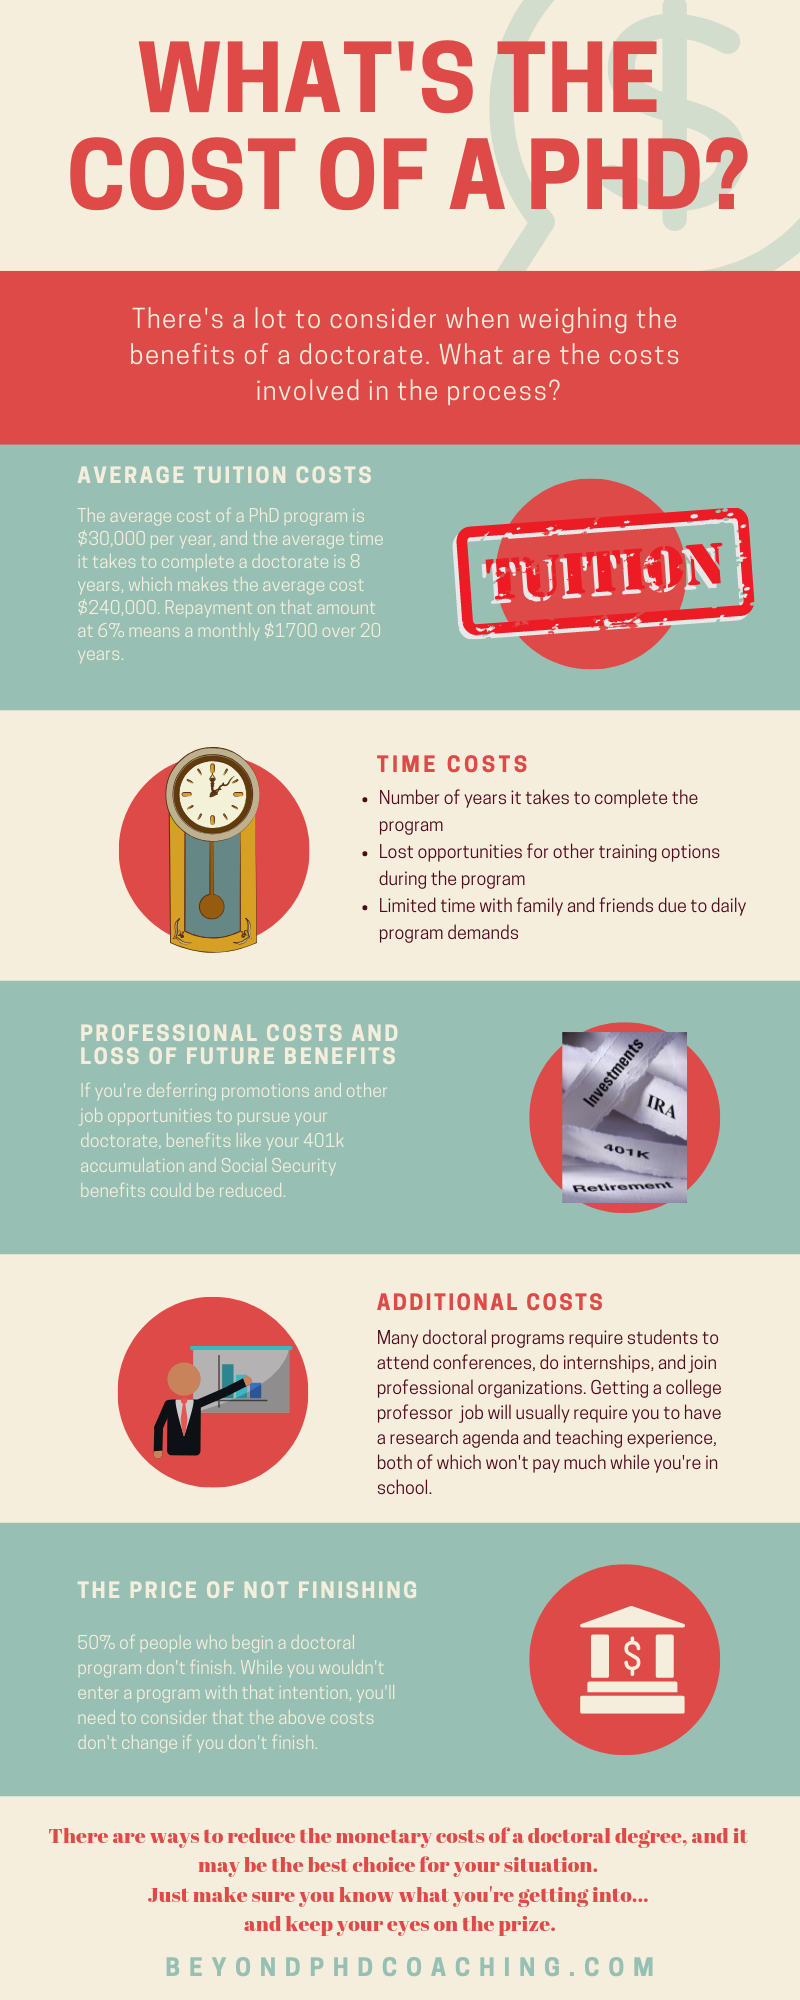 How Much Does a PhD Cost?